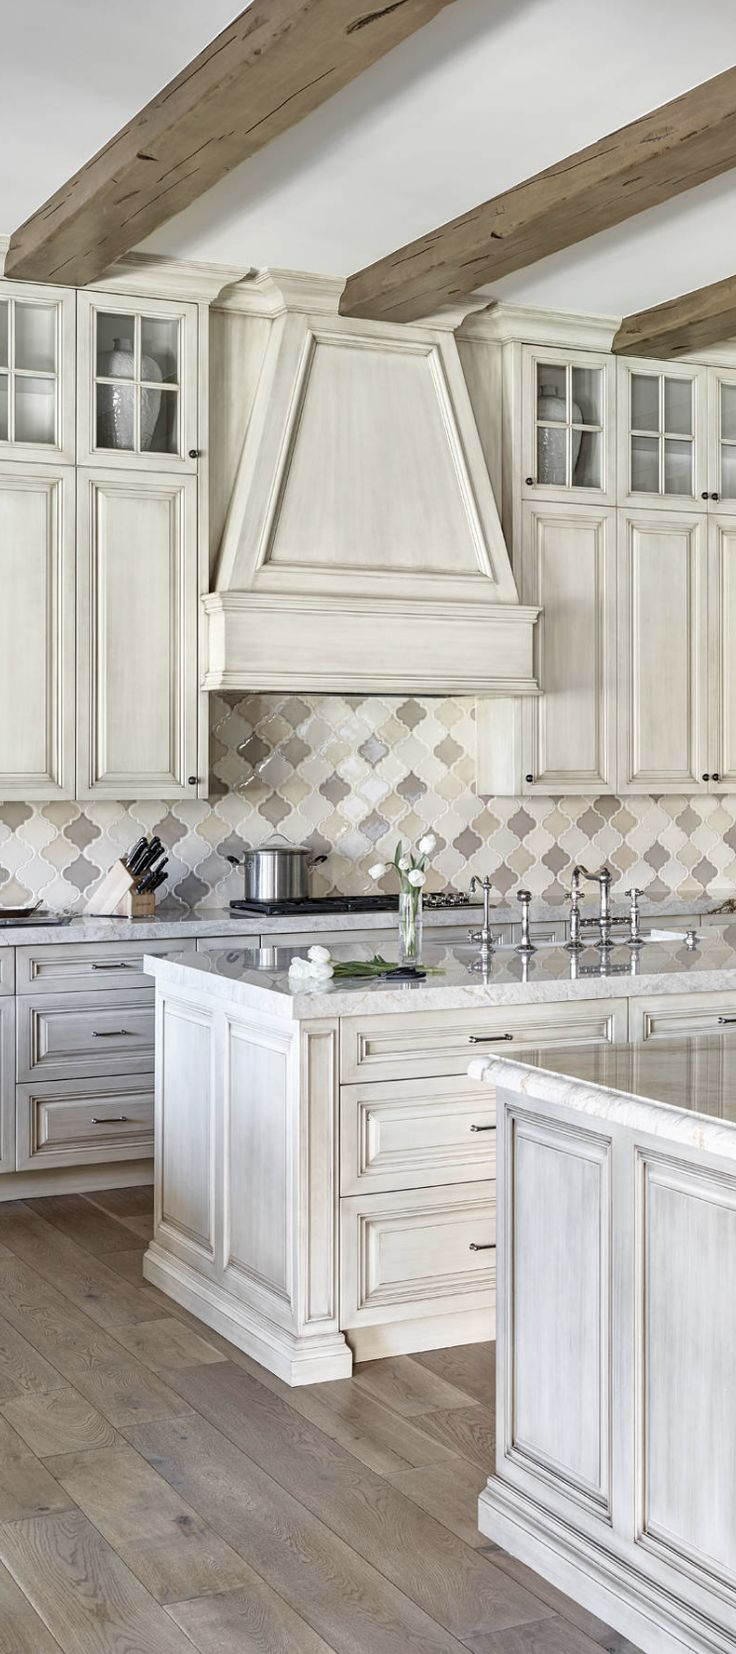 Best 25+ Tuscan kitchen design ideas on Pinterest ...